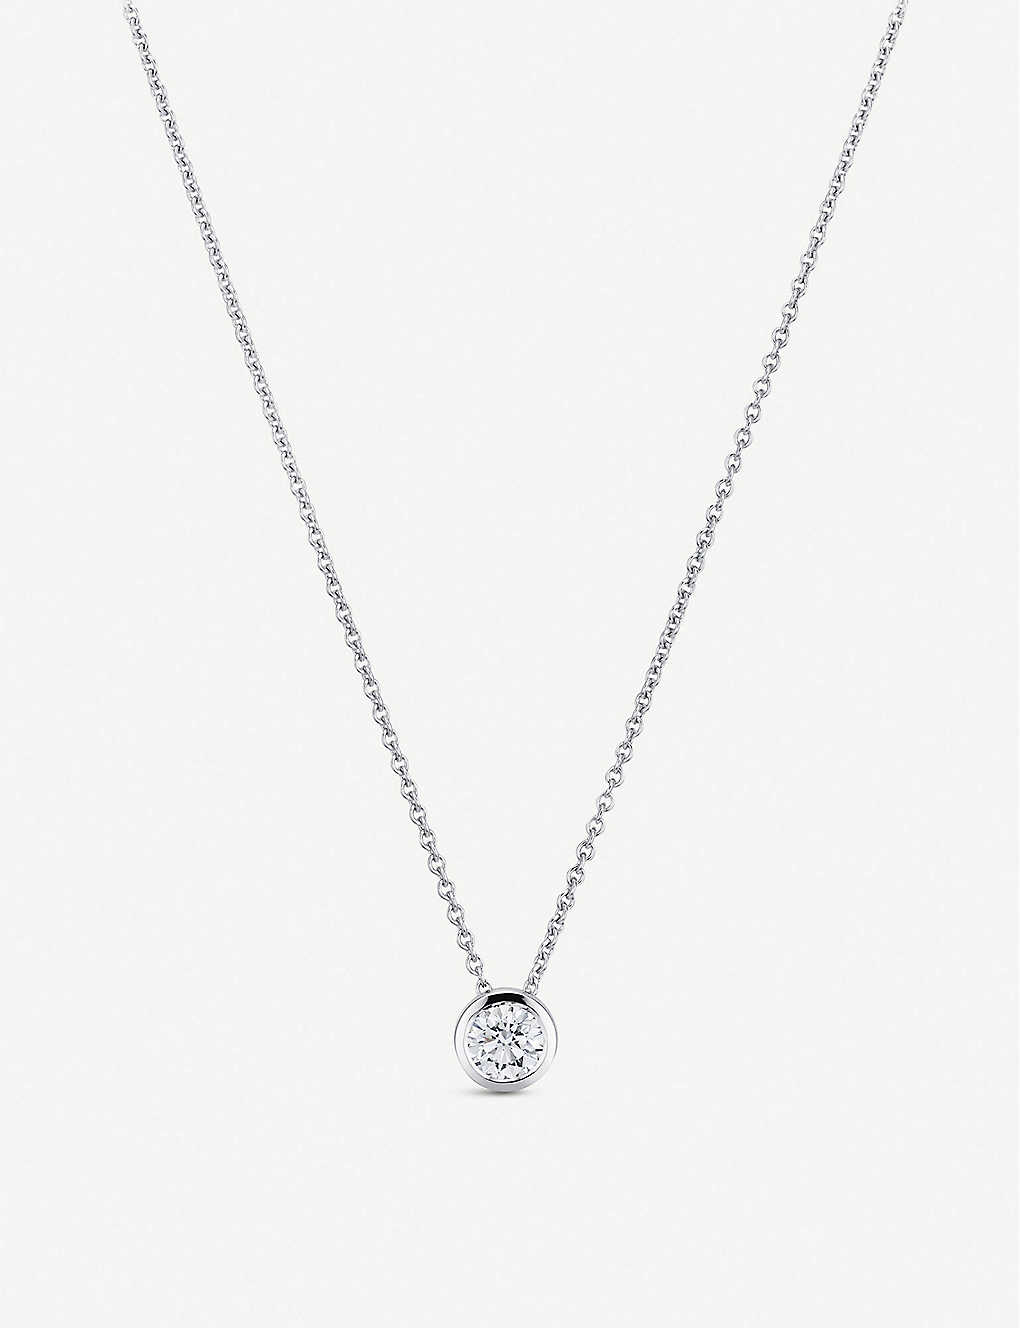 CARL F BUCHERER: Collitaire Darling 18ct white gold and diamond necklace